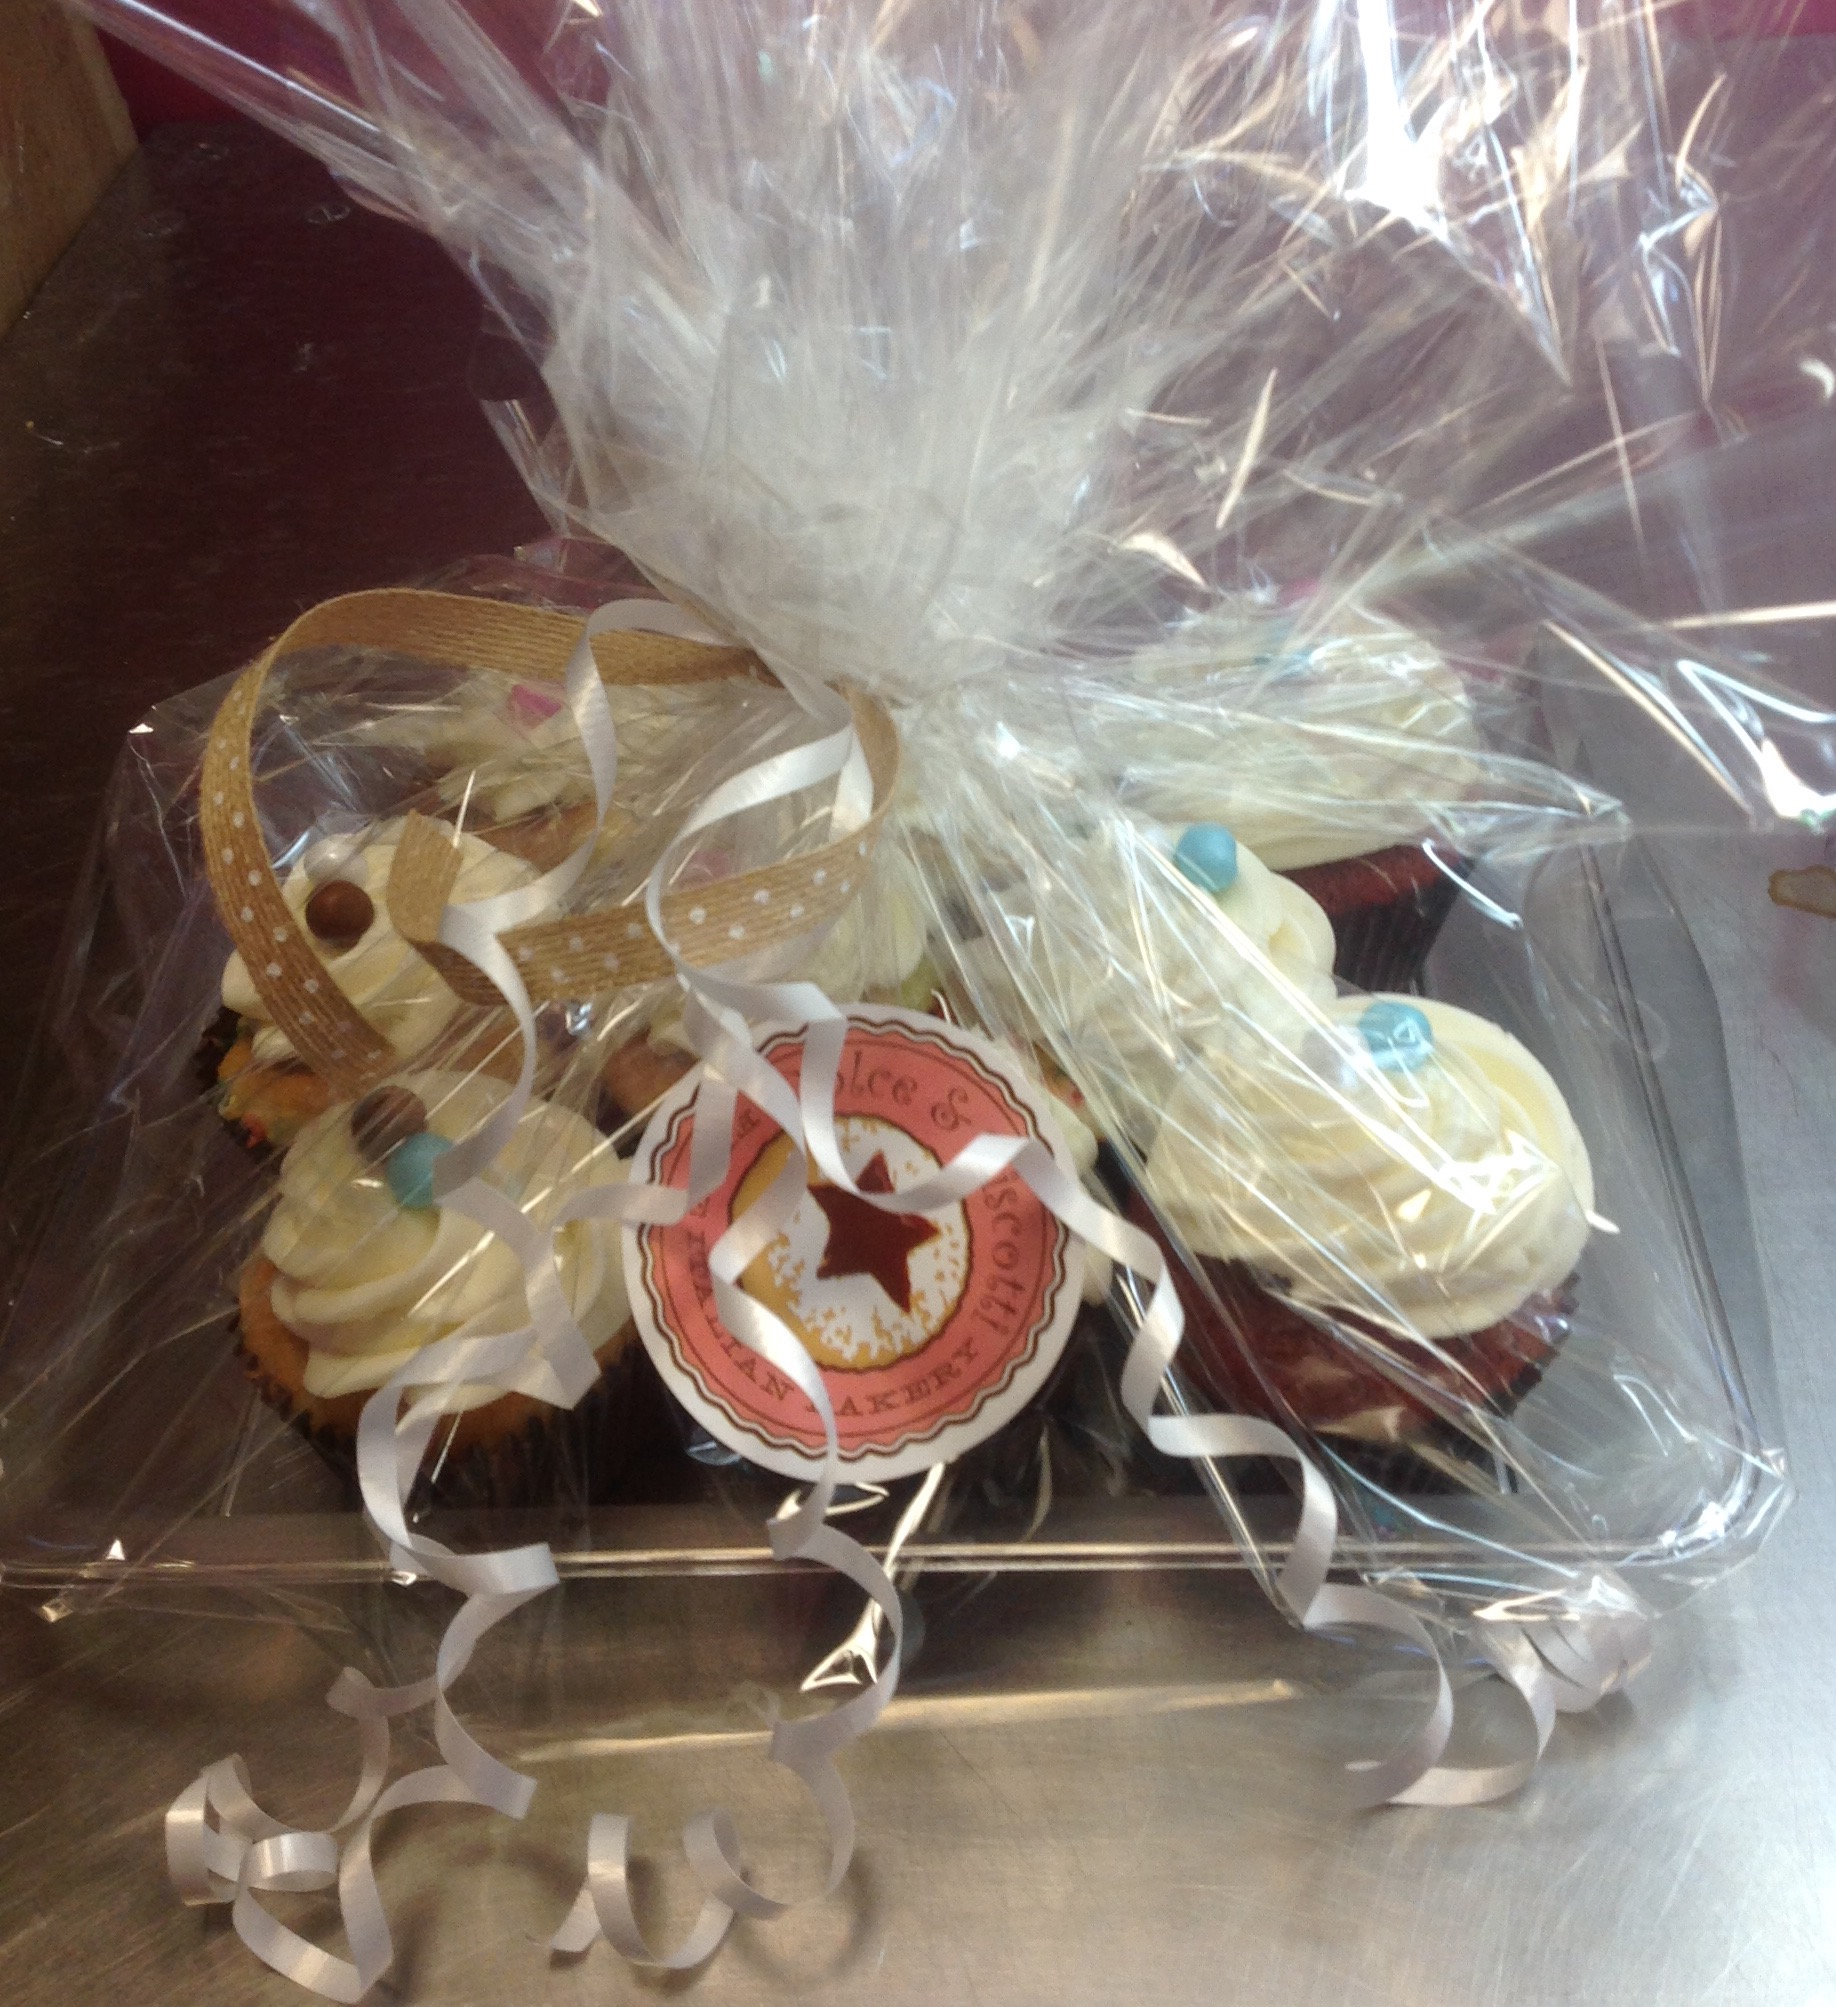 Cupcake platters and boxes at Dolce and Biscotti Italian Bakery